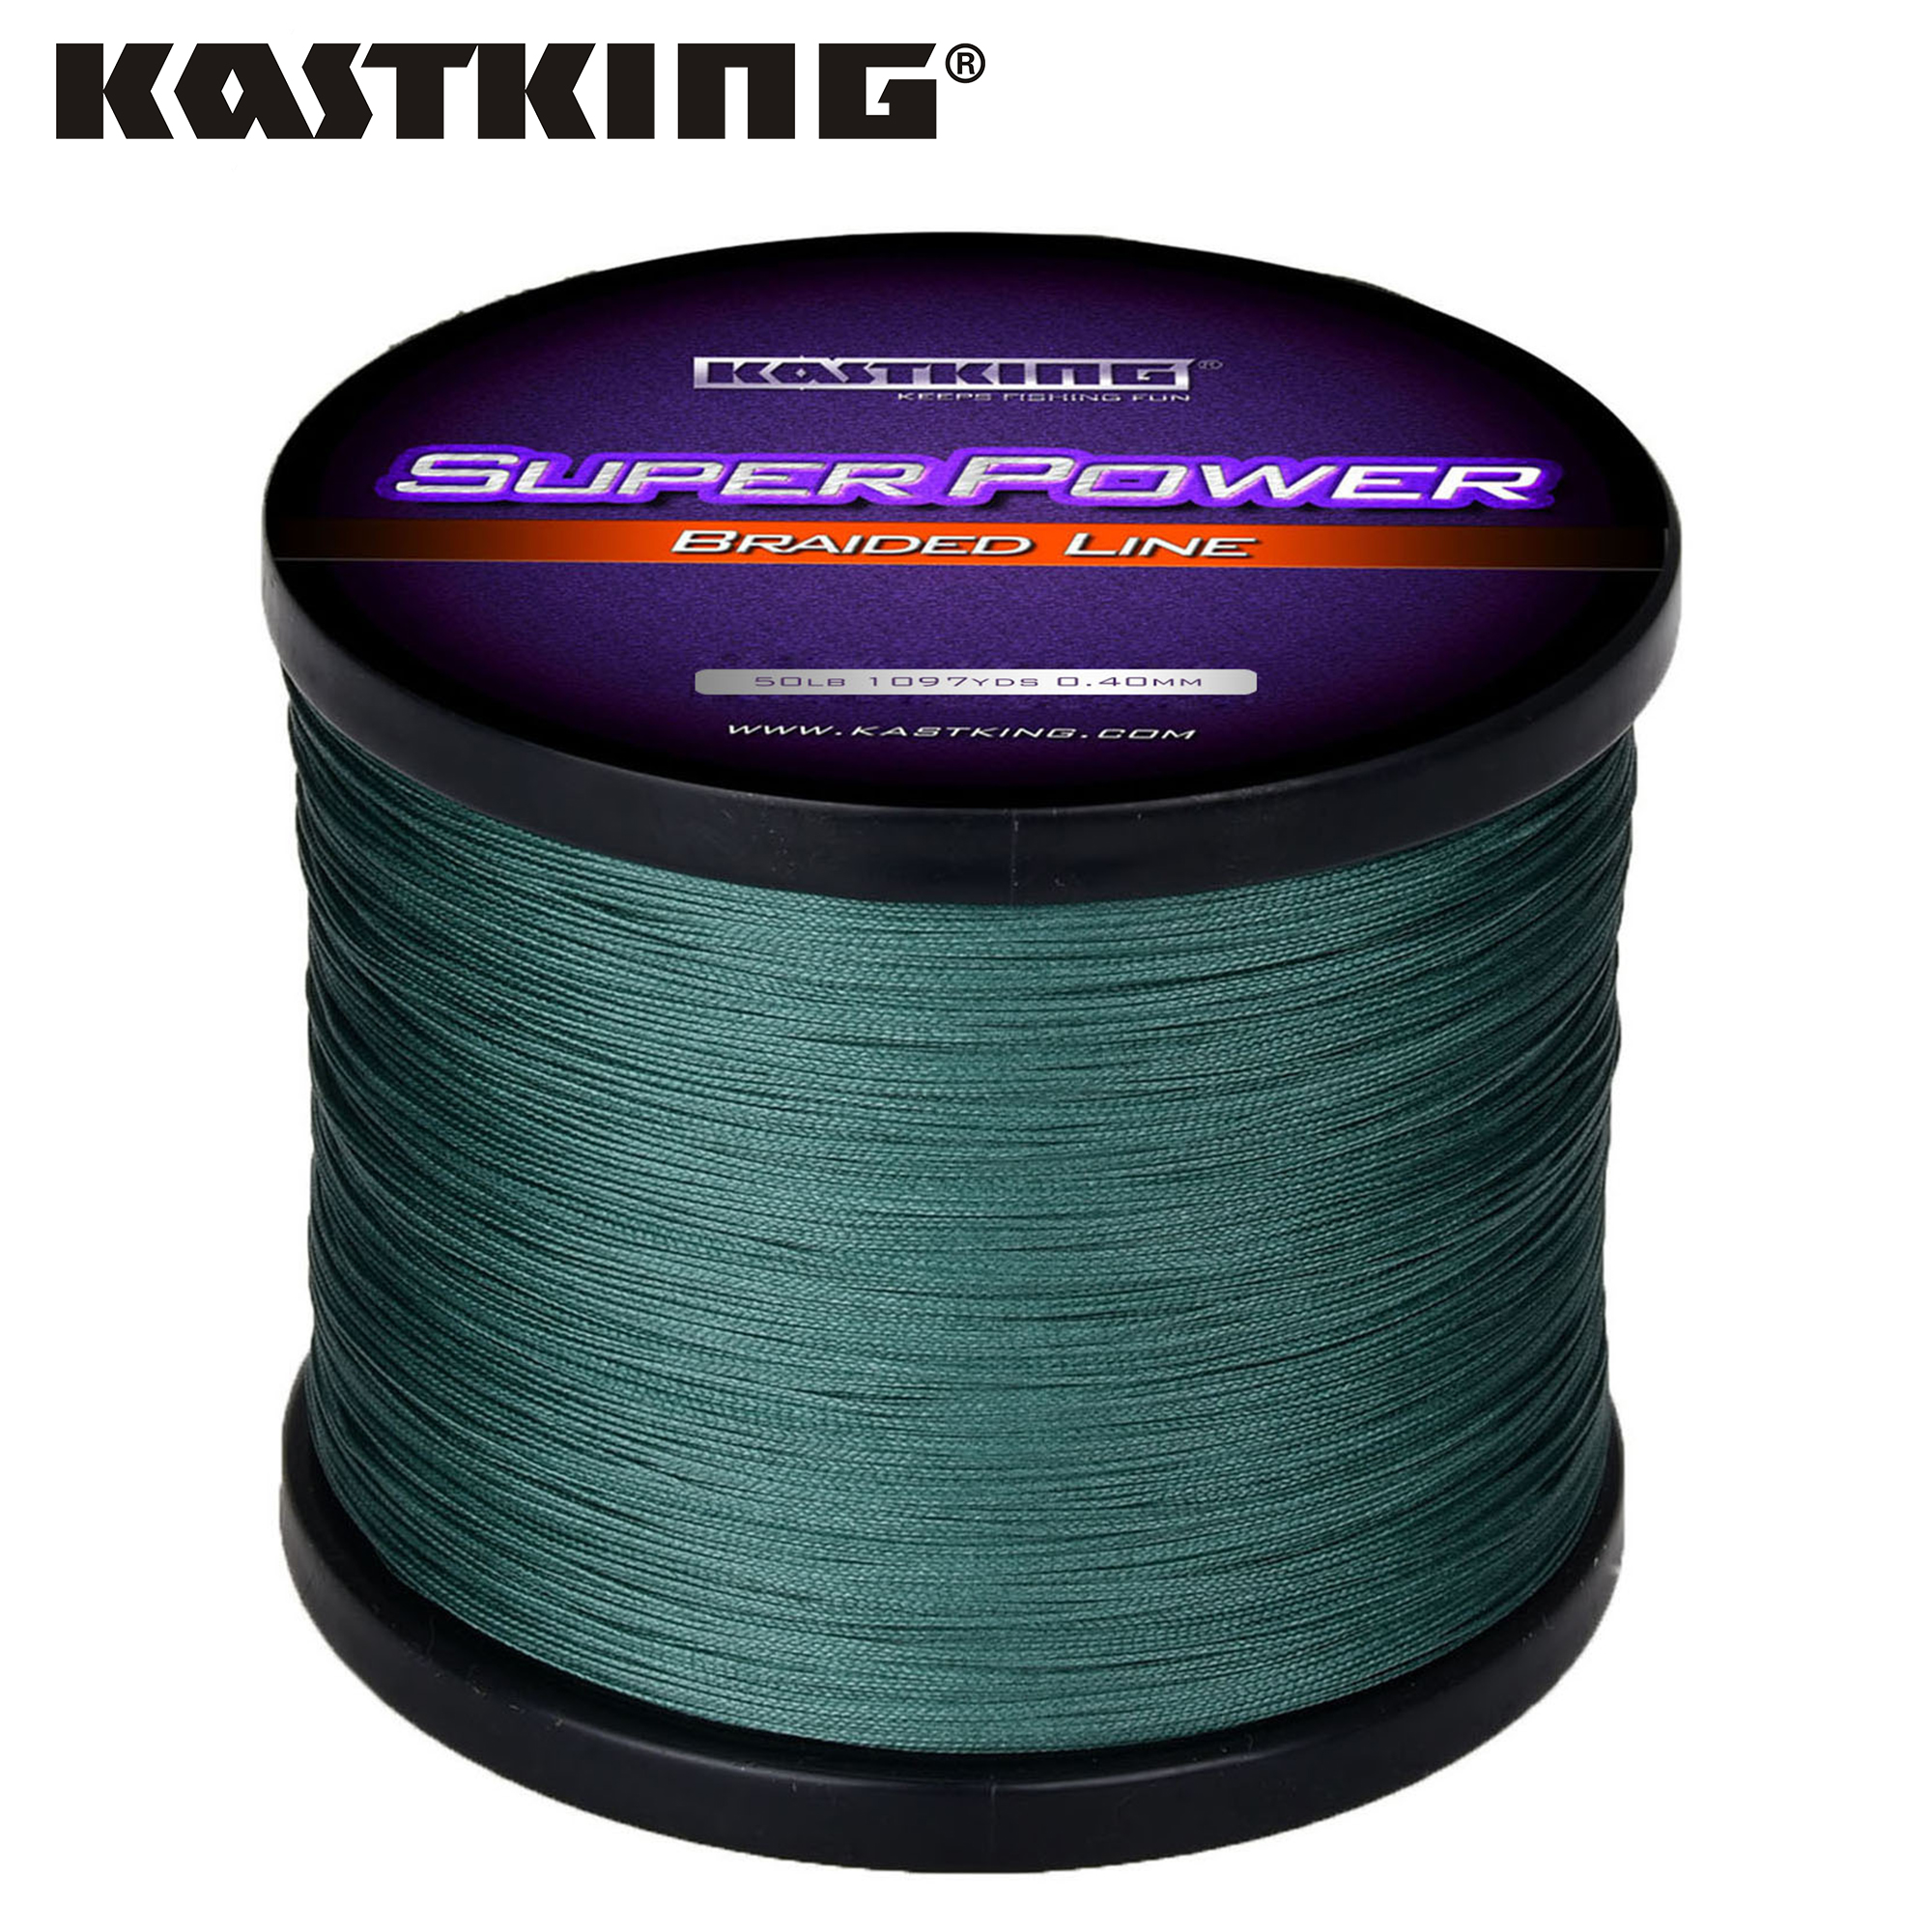 KastKing Superpower Series 1000m PE Braided Fishing Line 10 15 20 25 30 40 80LB Multifilament Braid Line for Saltwater Fishing